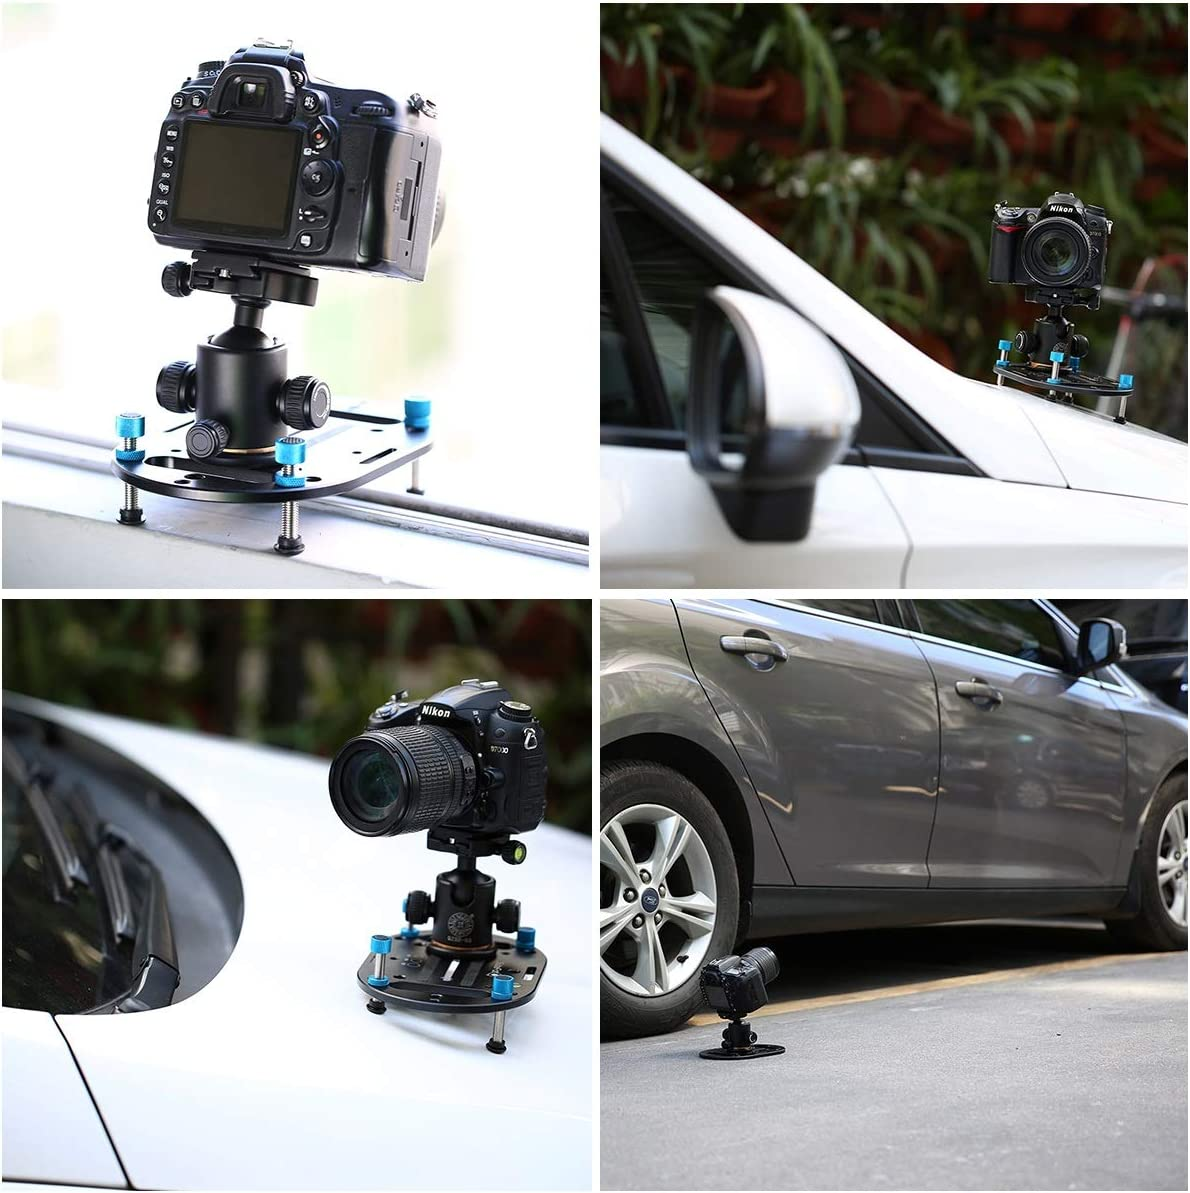 Color : Black Jusun Low Tripod Most Compact Mini Tripod Camera Universal Mounting Plate and Versatile Photography Base for Any DSLR